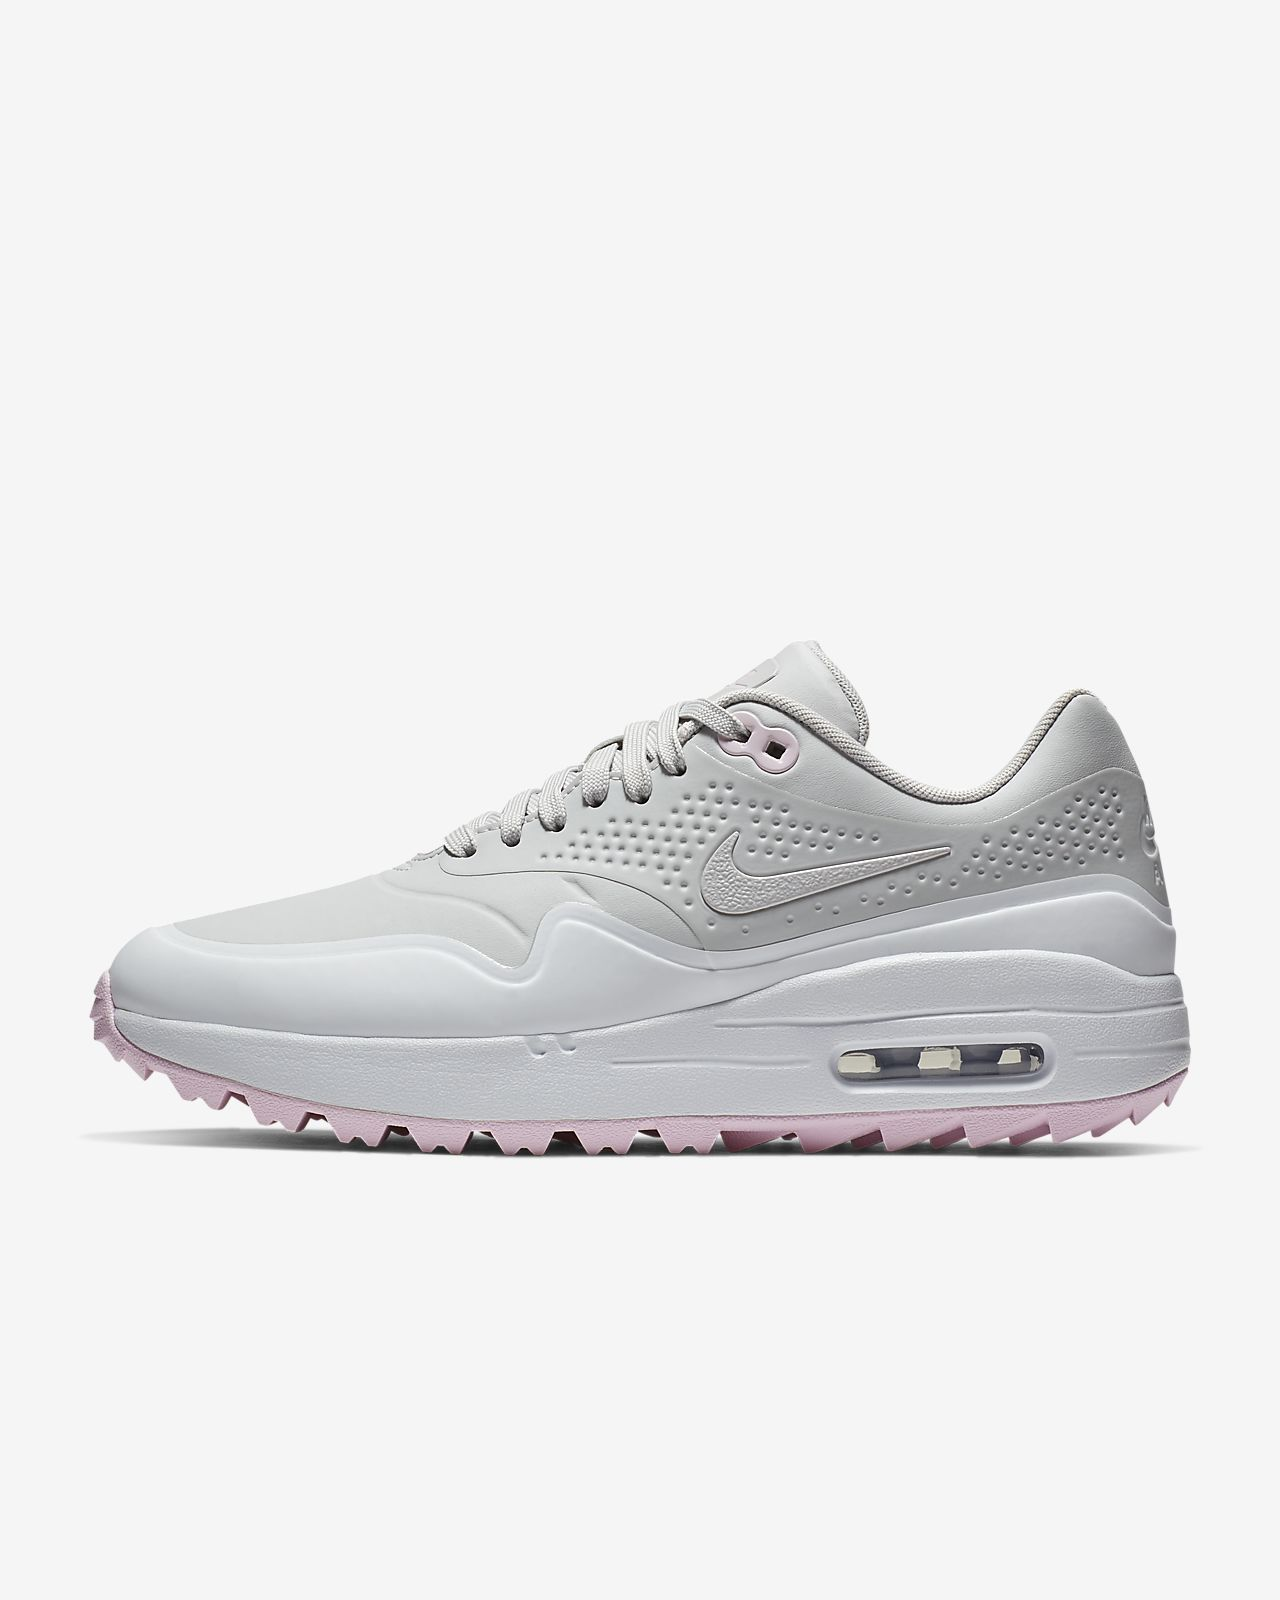 Nike Air Max 1g Golf Shoes Review